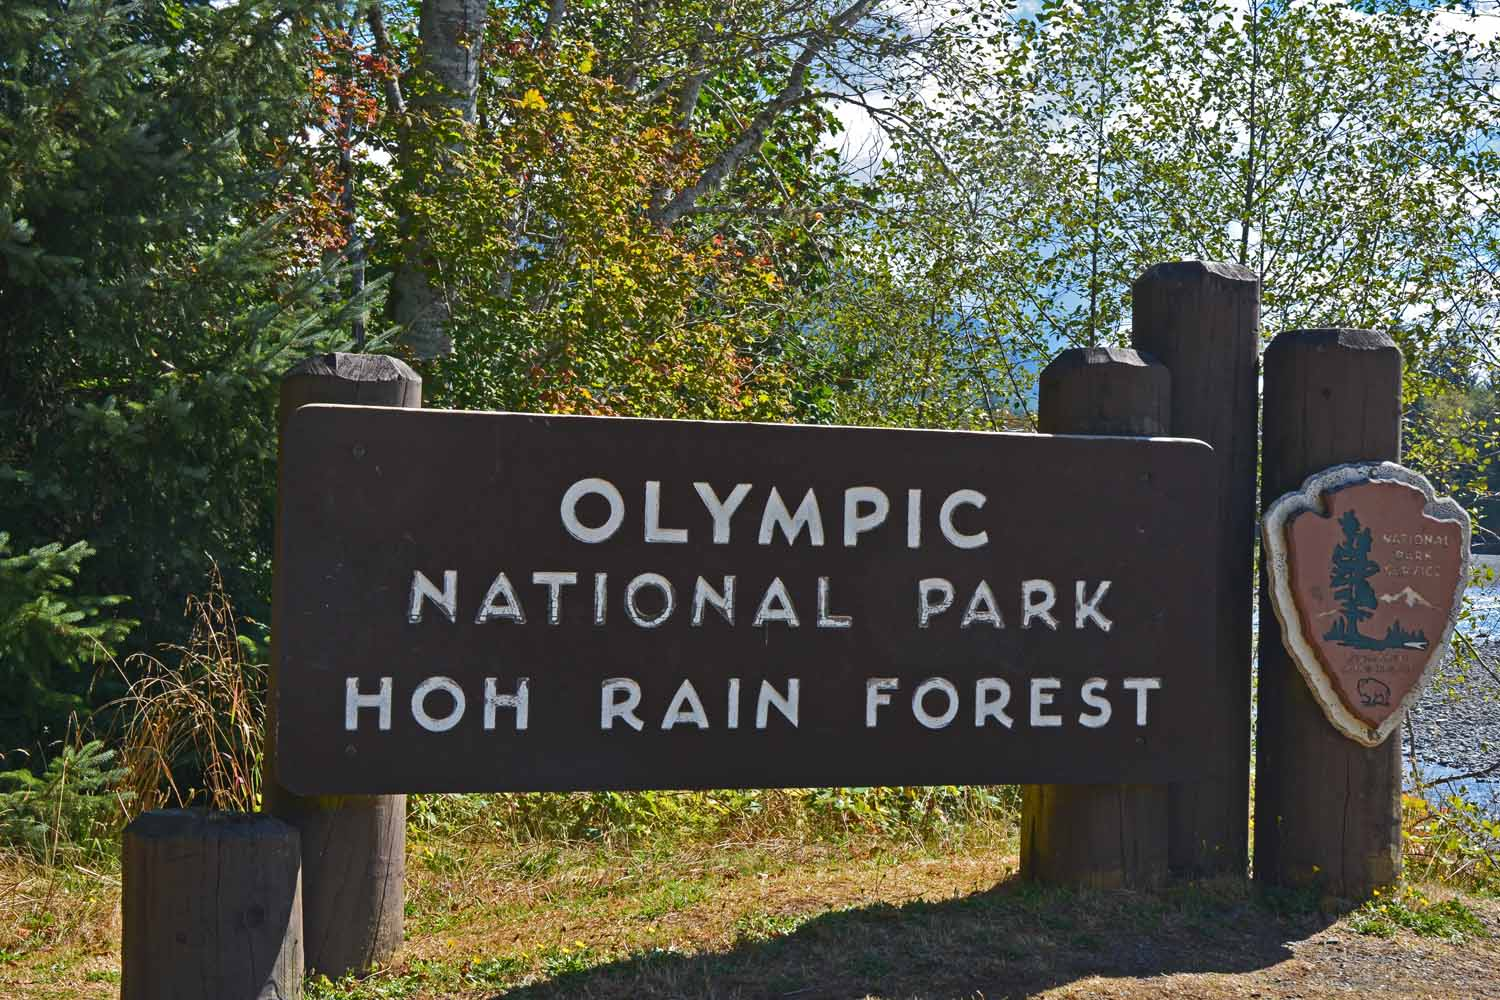 Olympic National Park is the setting for a temperate rain forest.  One of the places we visited was Hoh which gets high marks for it beauty.